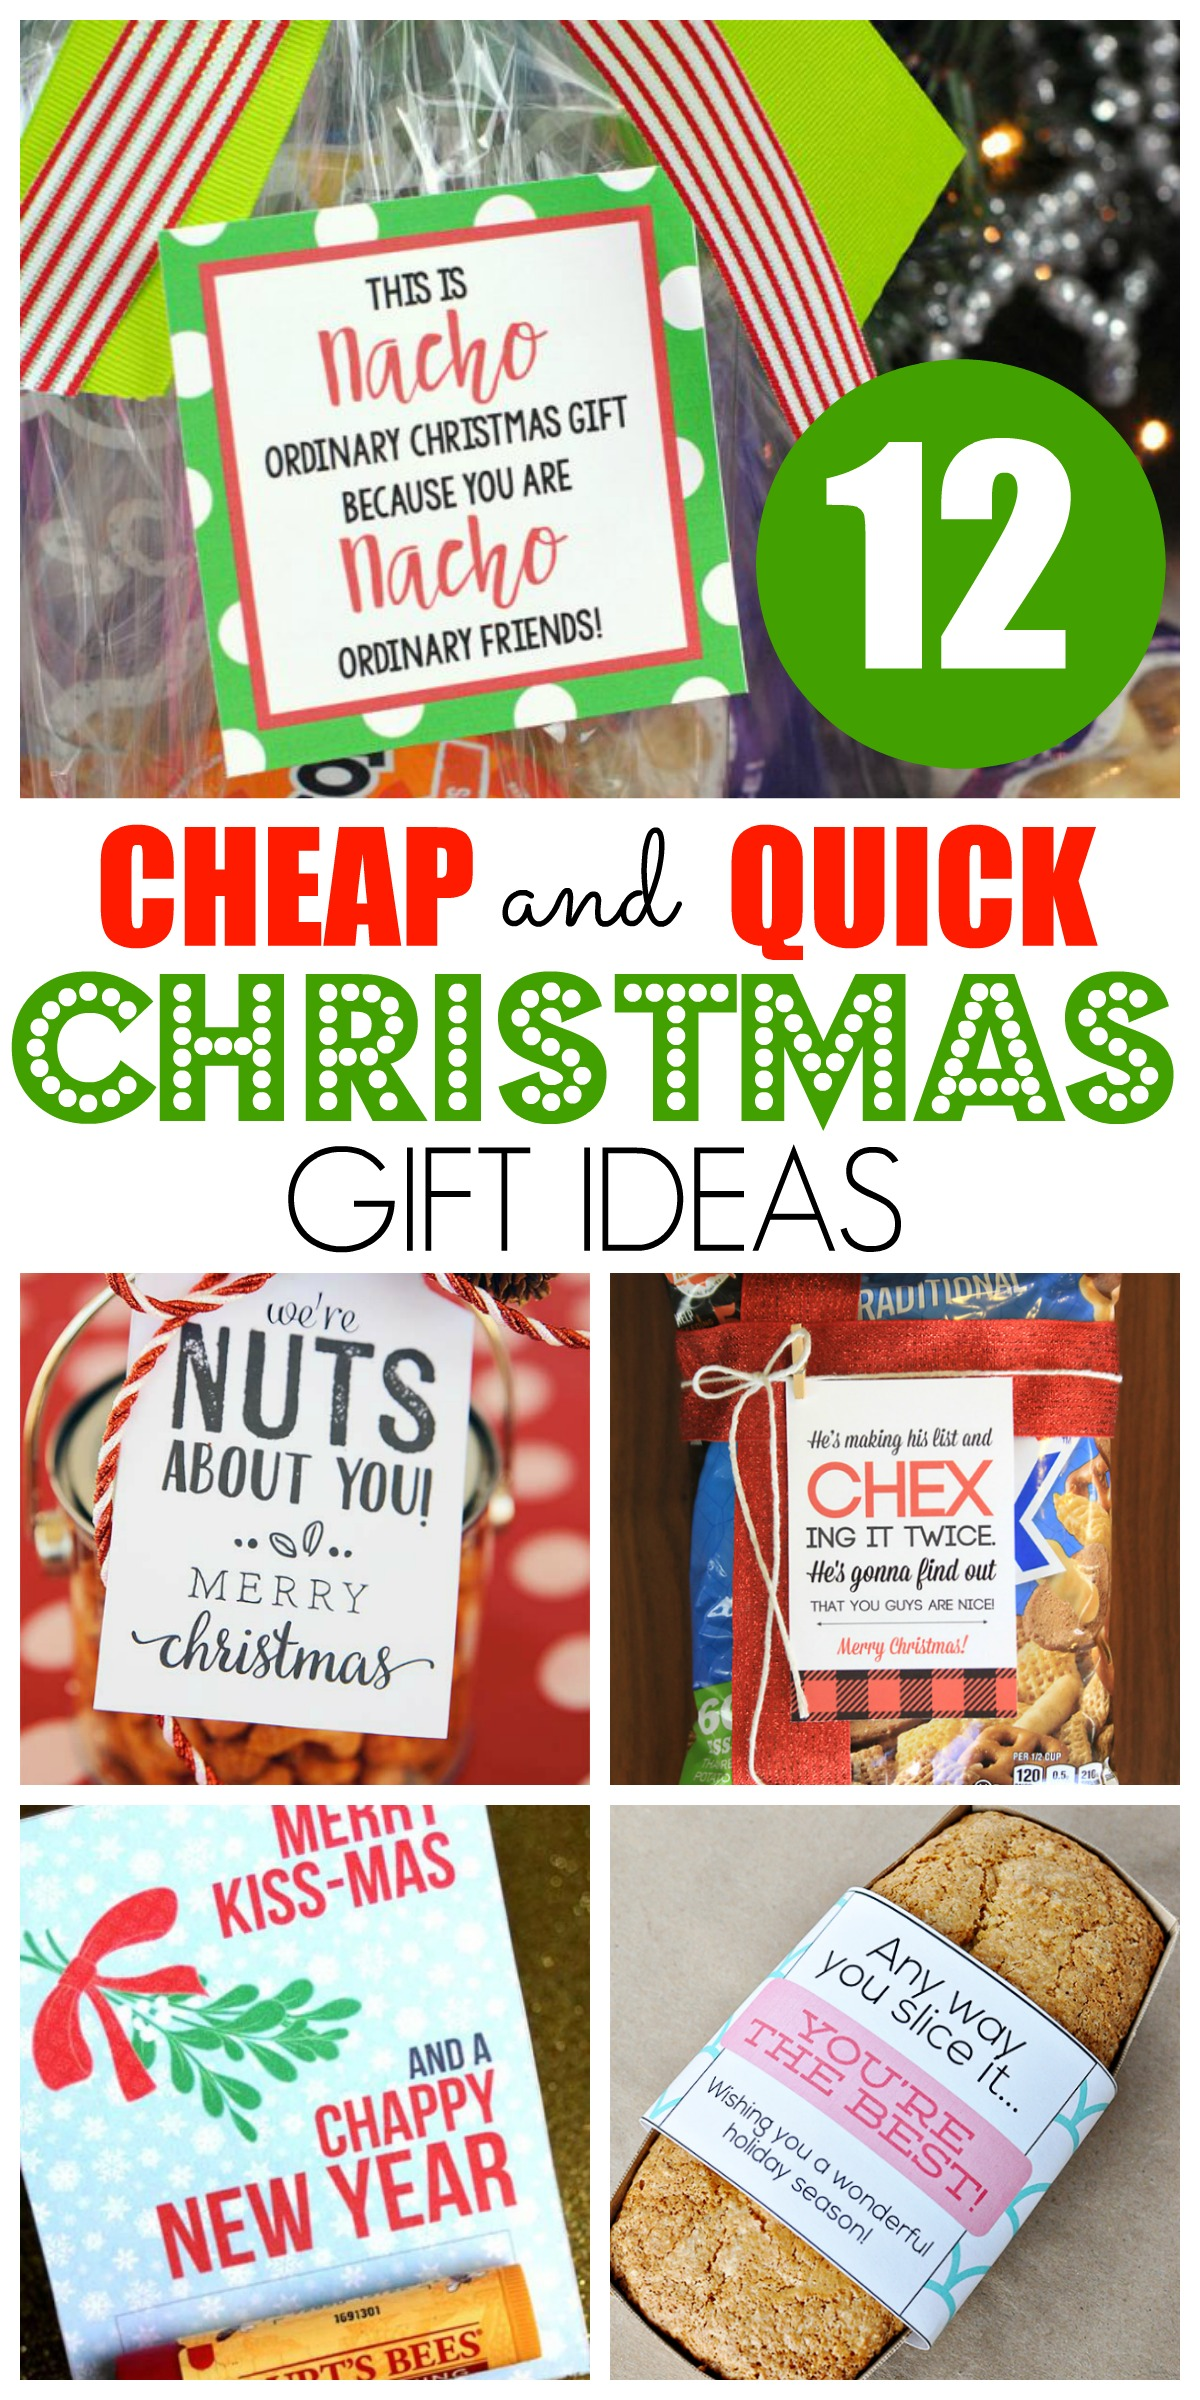 12 days of christmas small gifts ideas